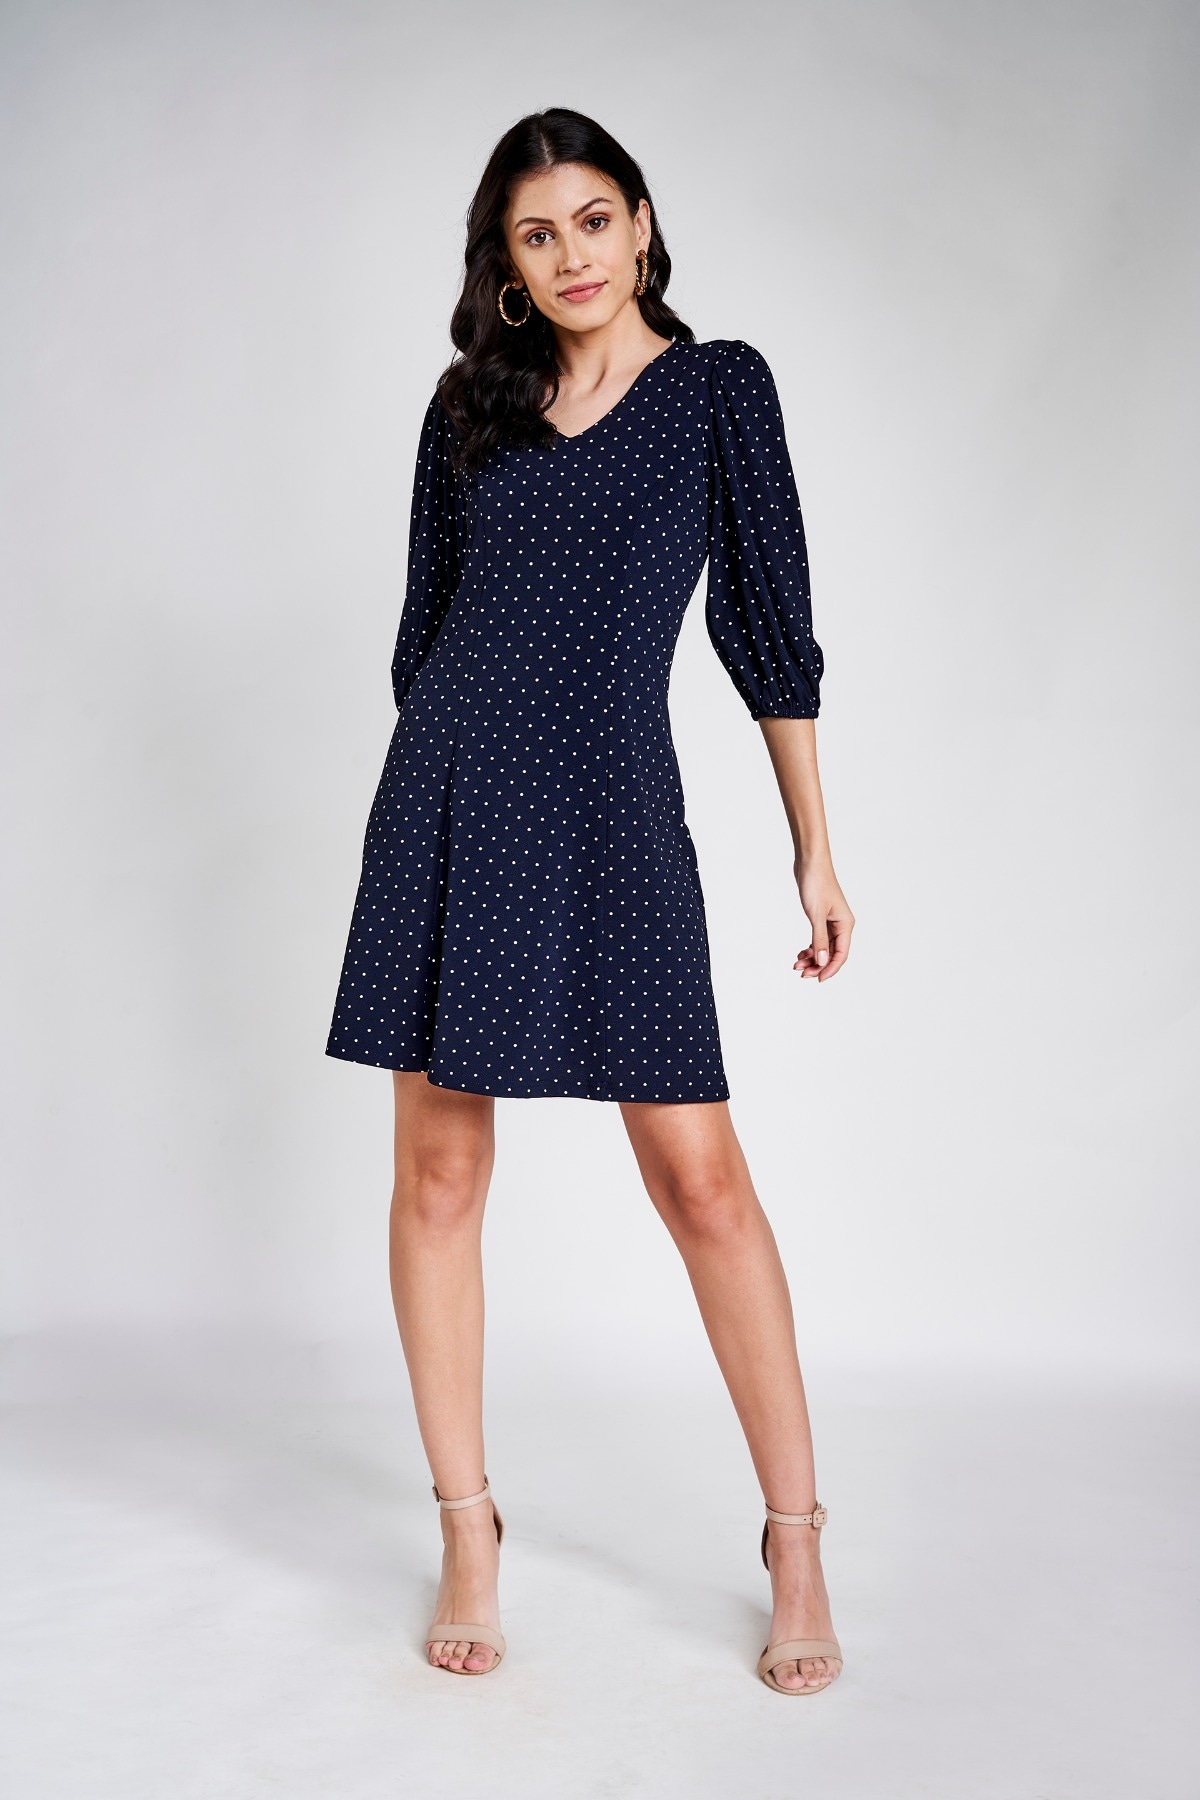 AND | Navy Blue Polka Dots Printed A-Line Dress